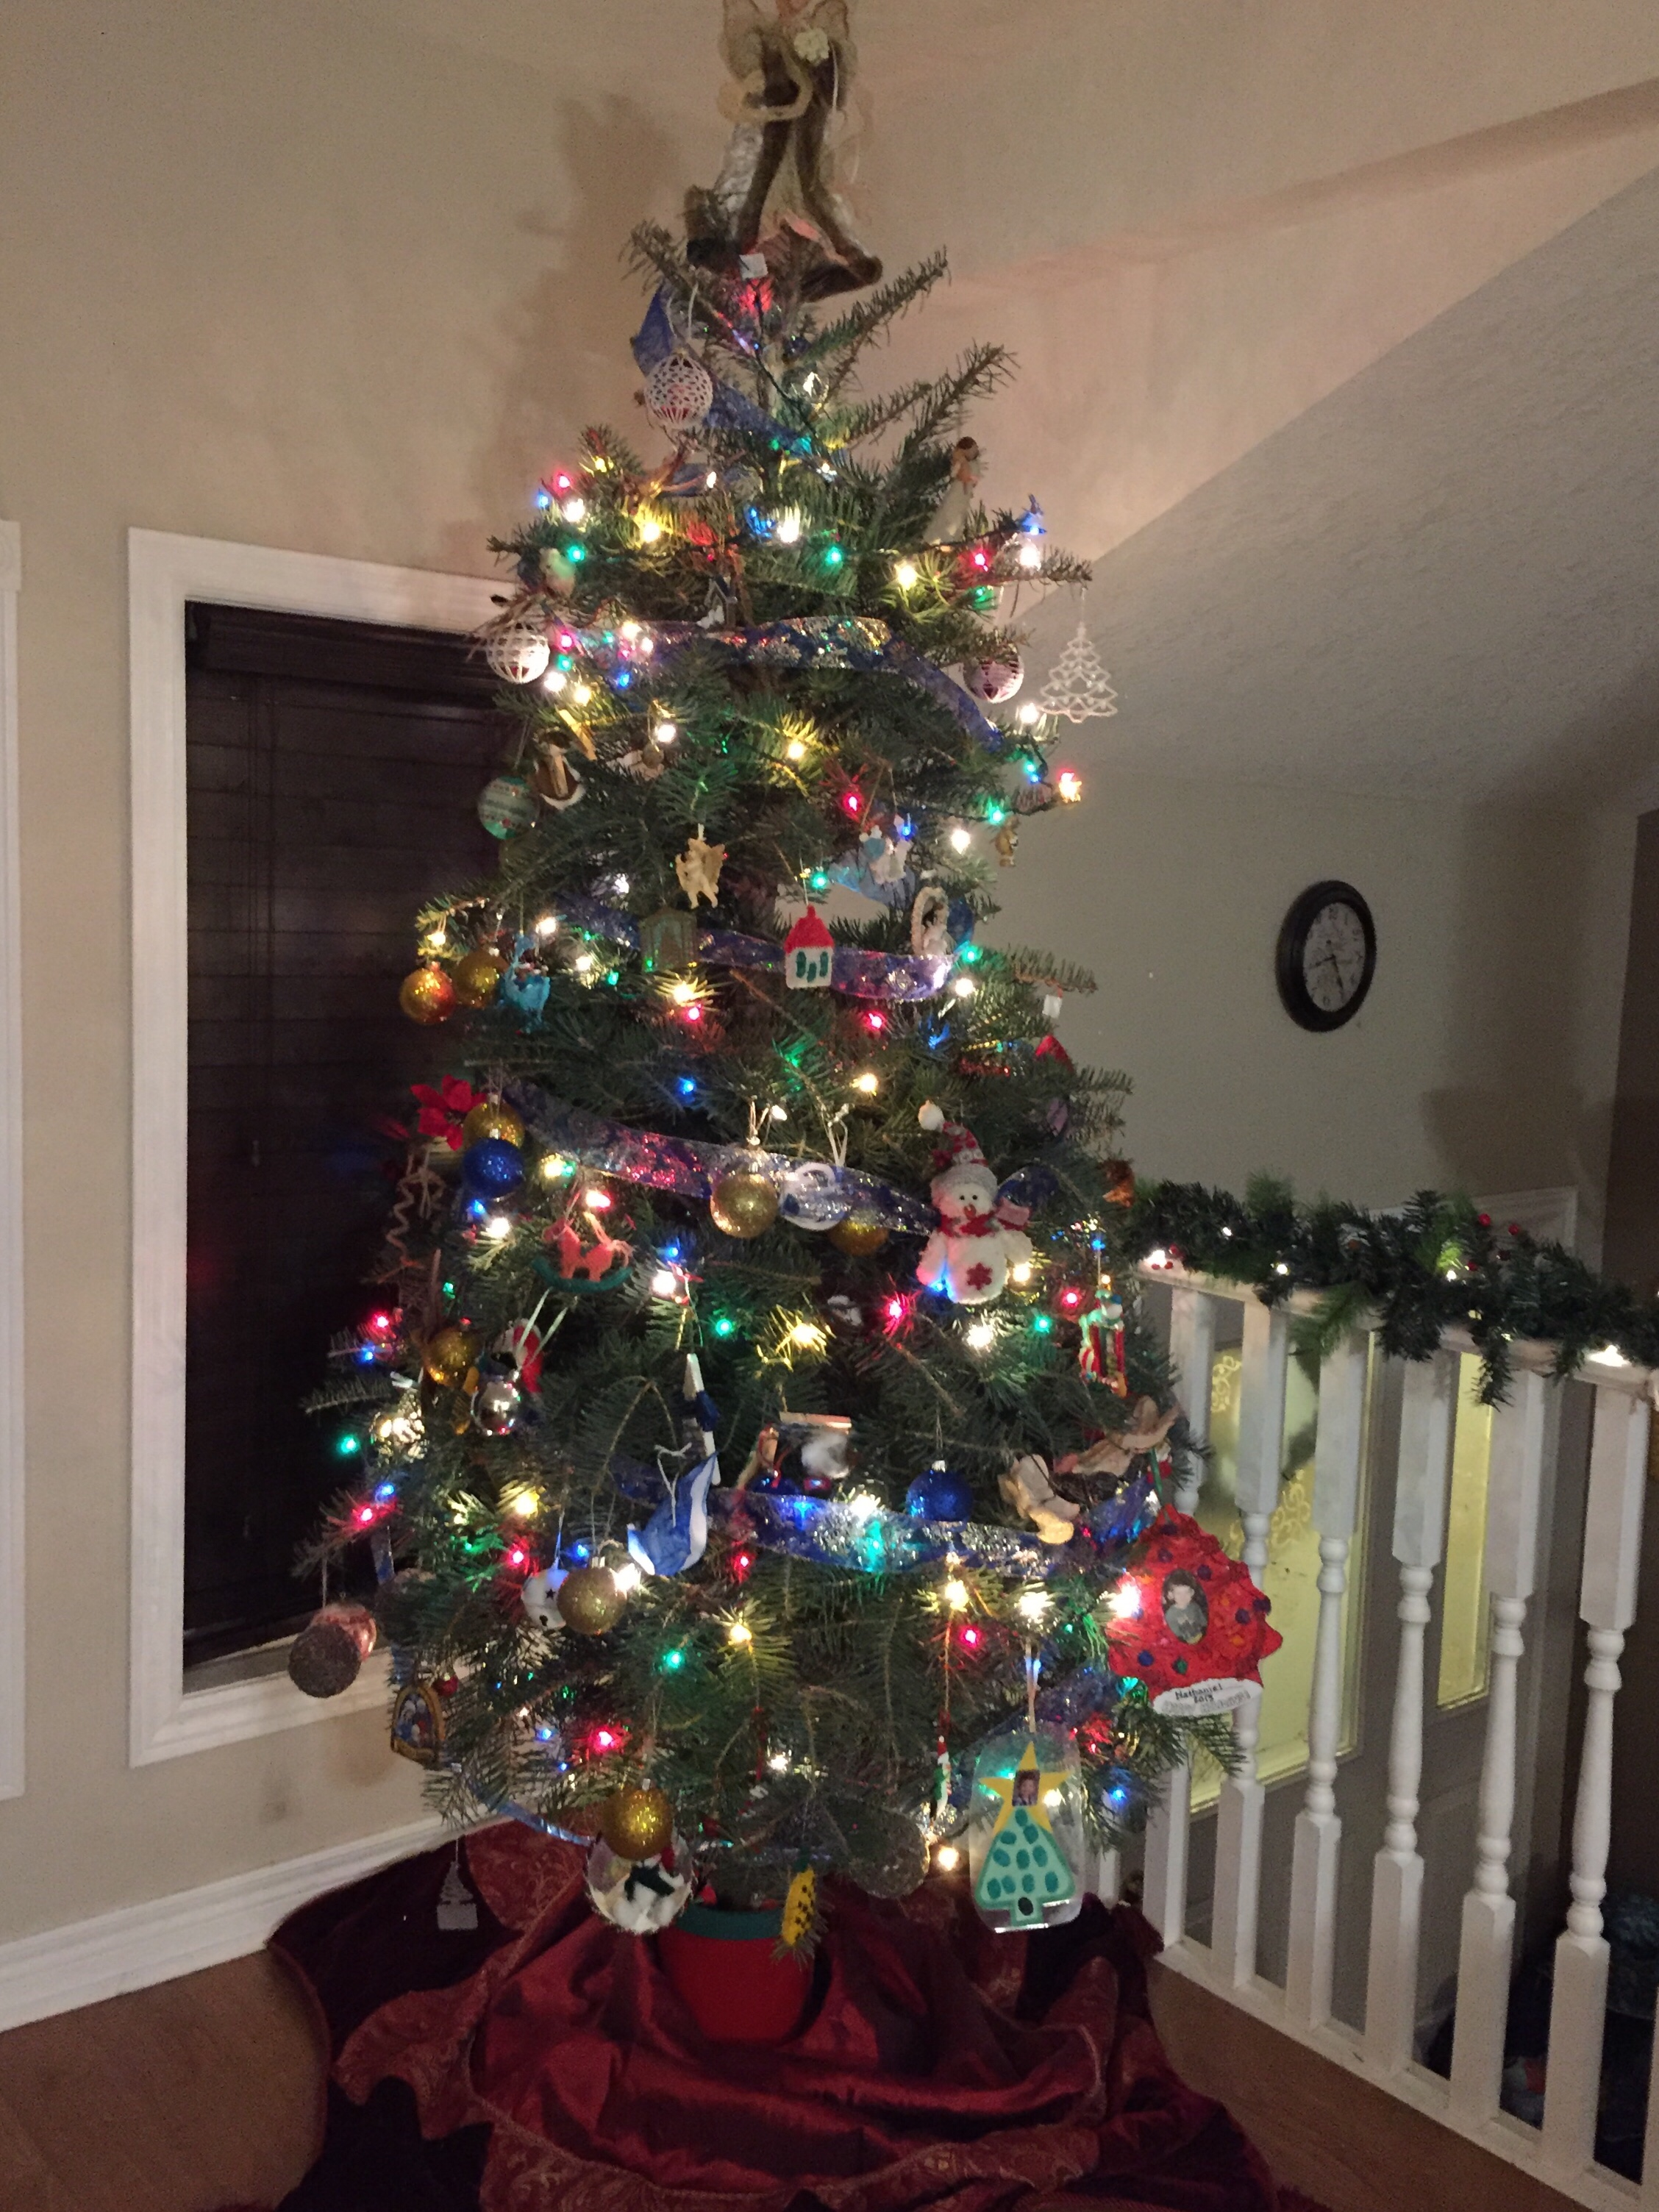 I love Christmas traditions  weather it be decorating the Christmas tree,  baking cookies or once again decorating the house. And, of course, Crochet  always ...